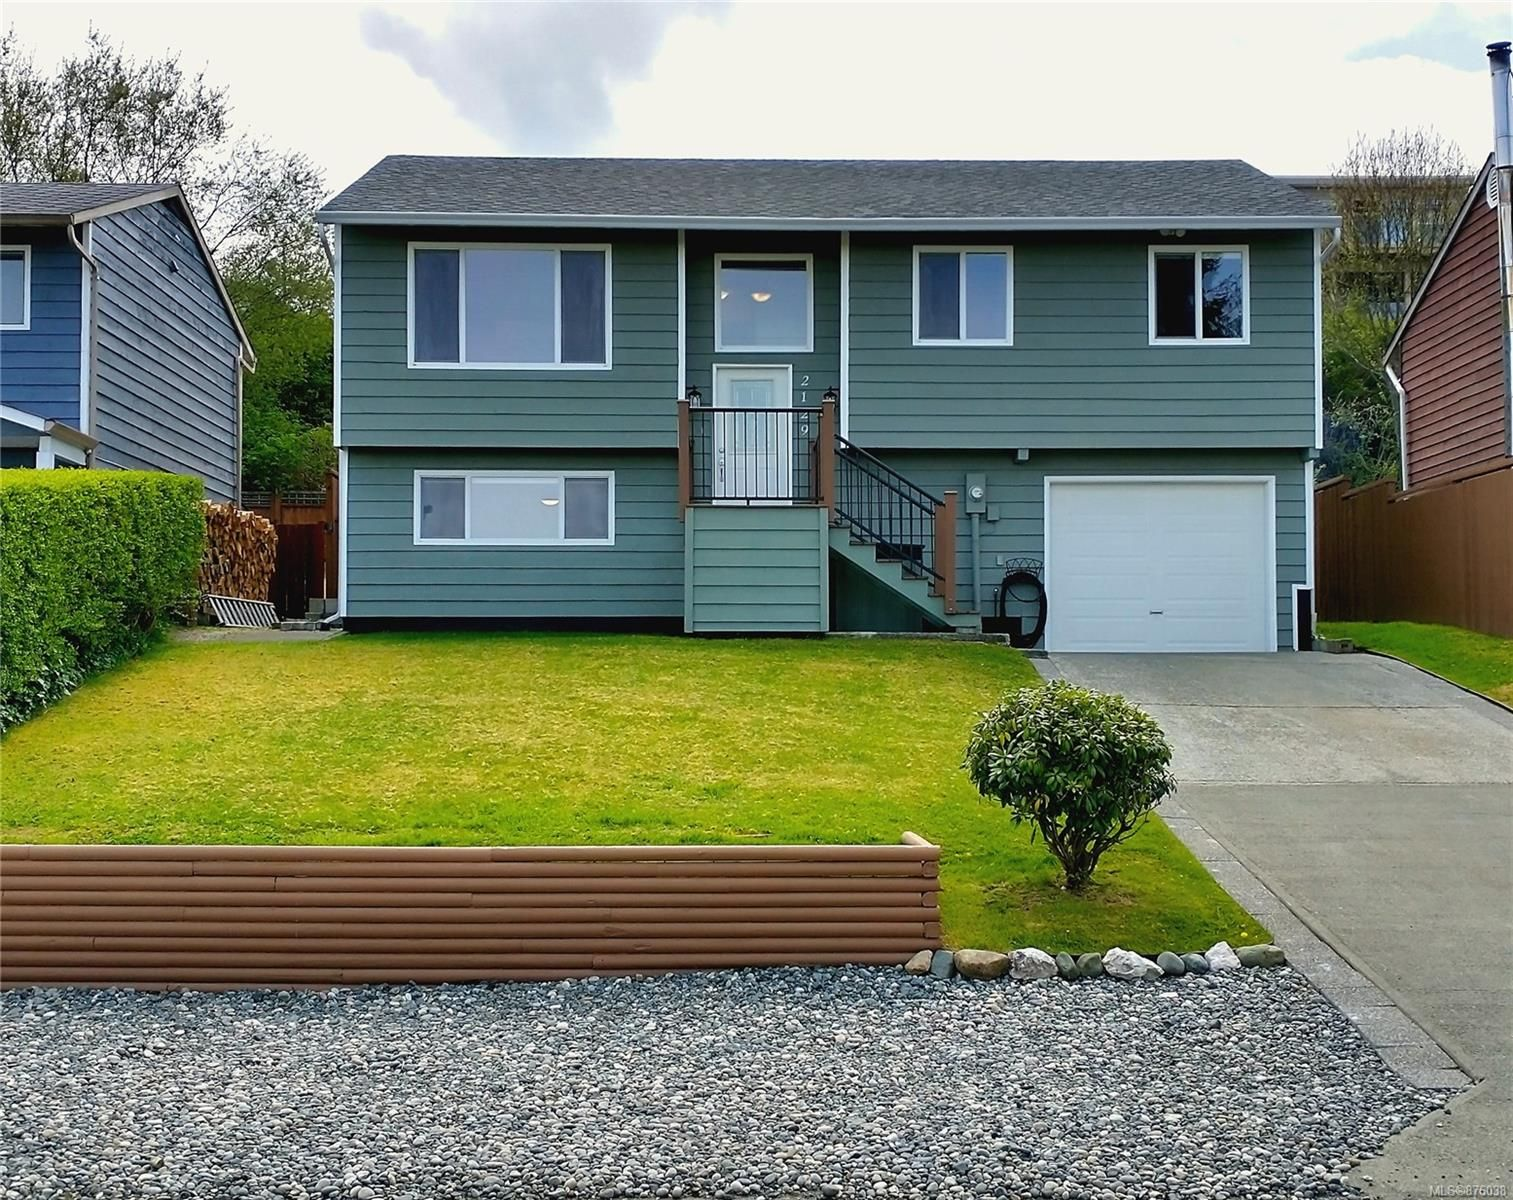 Main Photo: 2129 Pioneer Hill Dr in : NI Port McNeill House for sale (North Island)  : MLS®# 876038